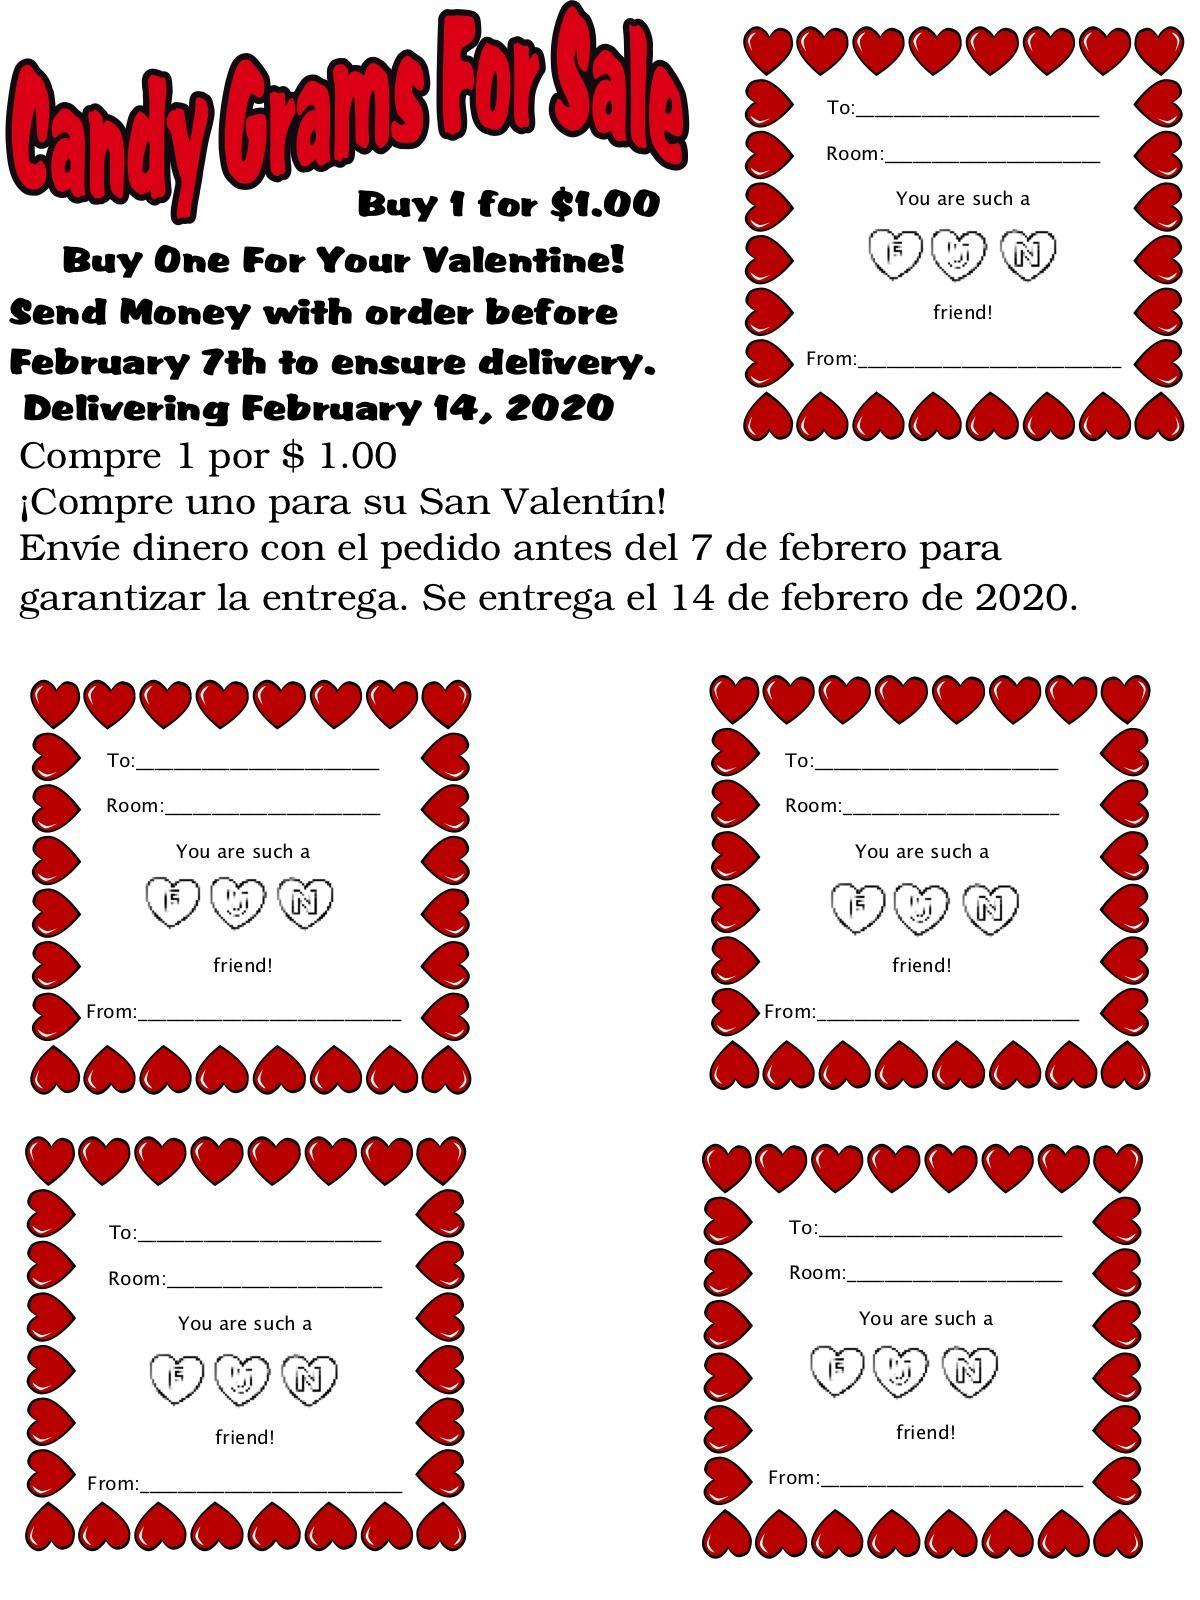 candy Gram flyer and link